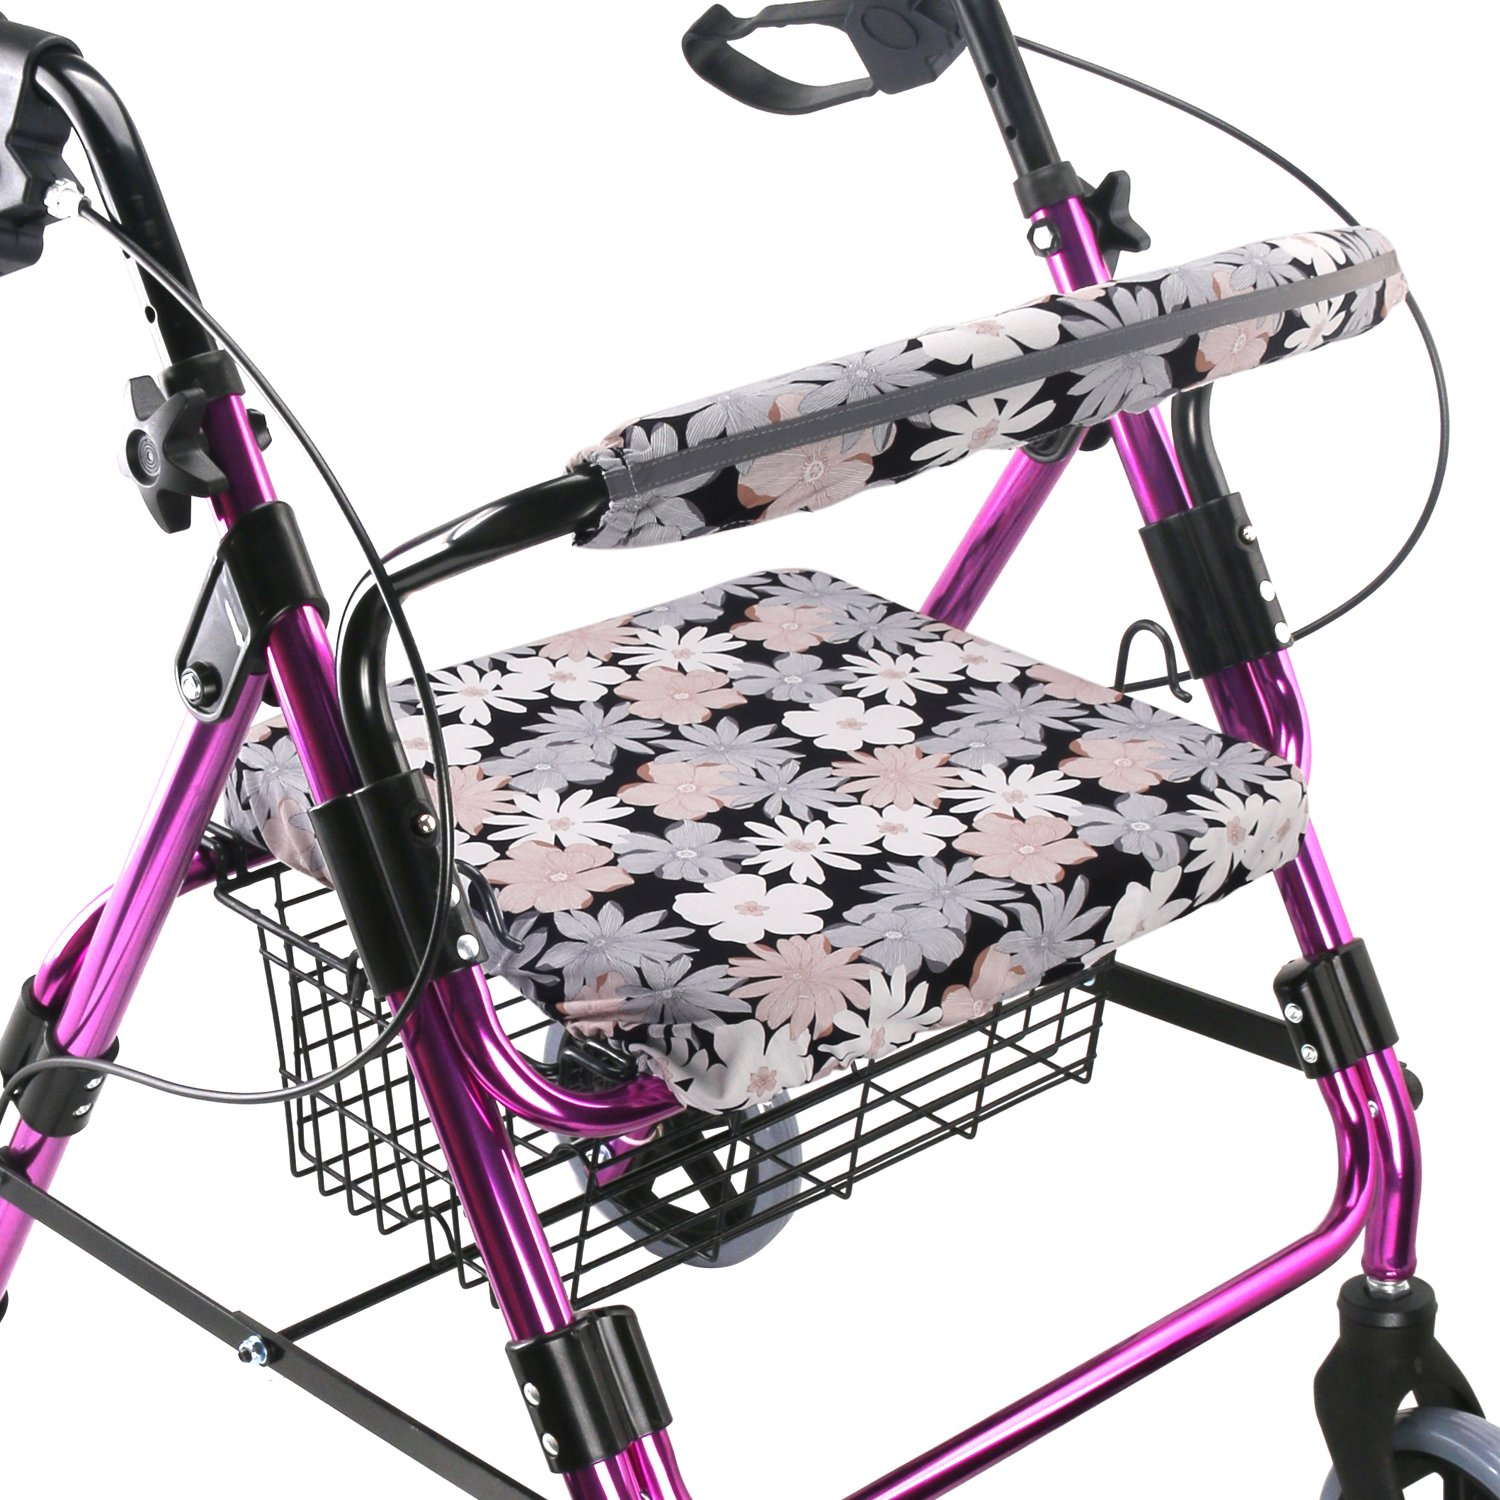 Walker Seat Cover Rollator Walker Seat and Backrest Covers Vibrant Walker Cover One Size Multiple Colors (CB1883) by TOMMHANES AMISGUOER